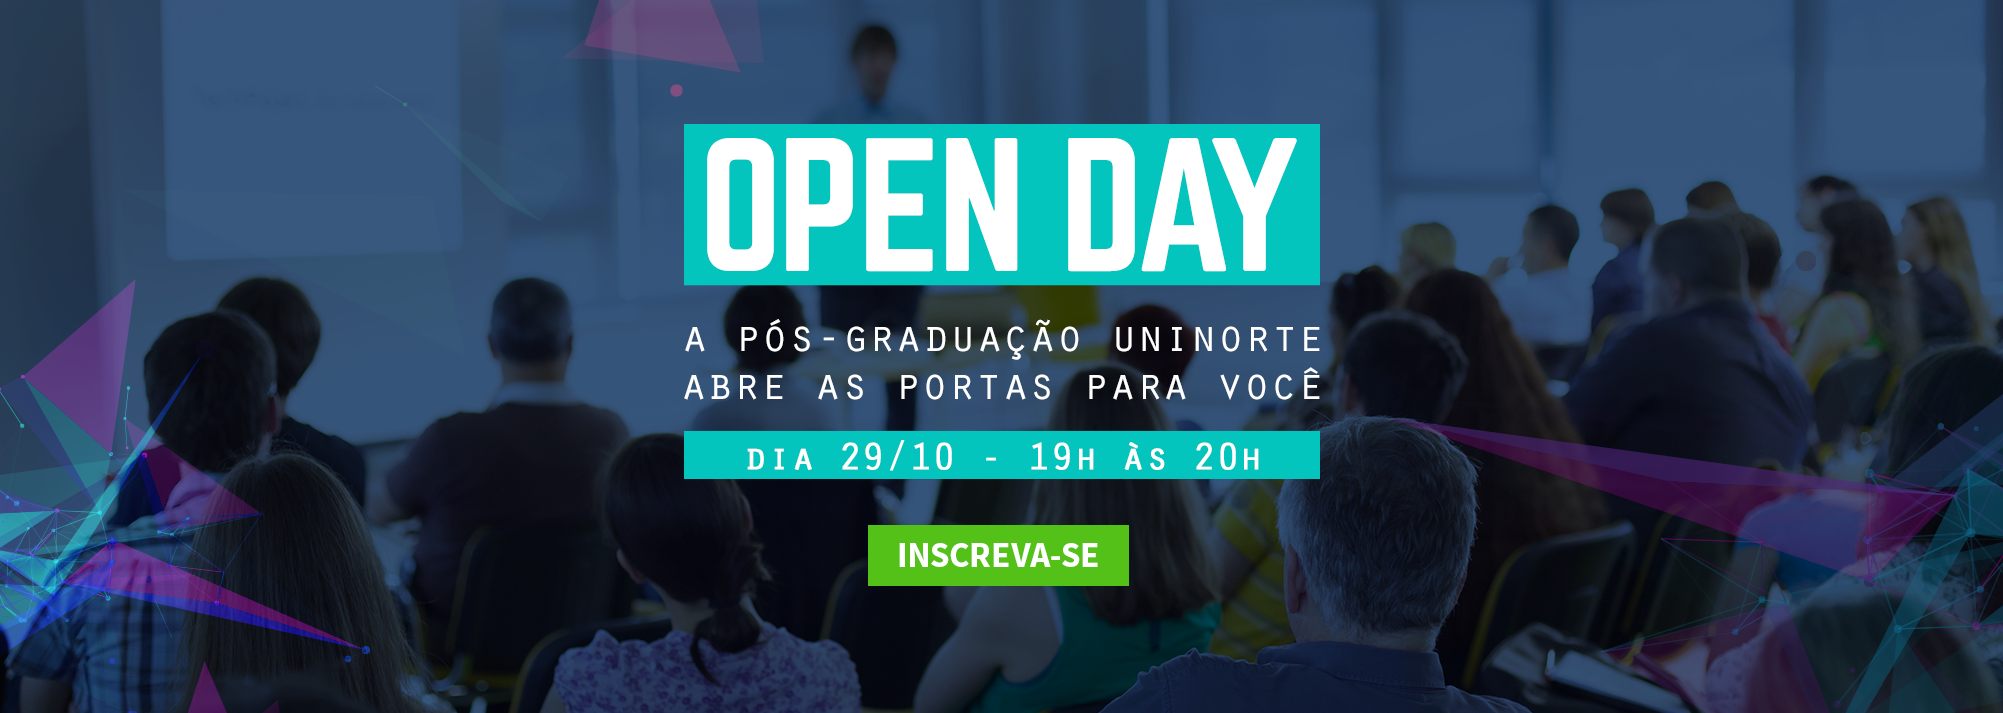 openday_banner (2)